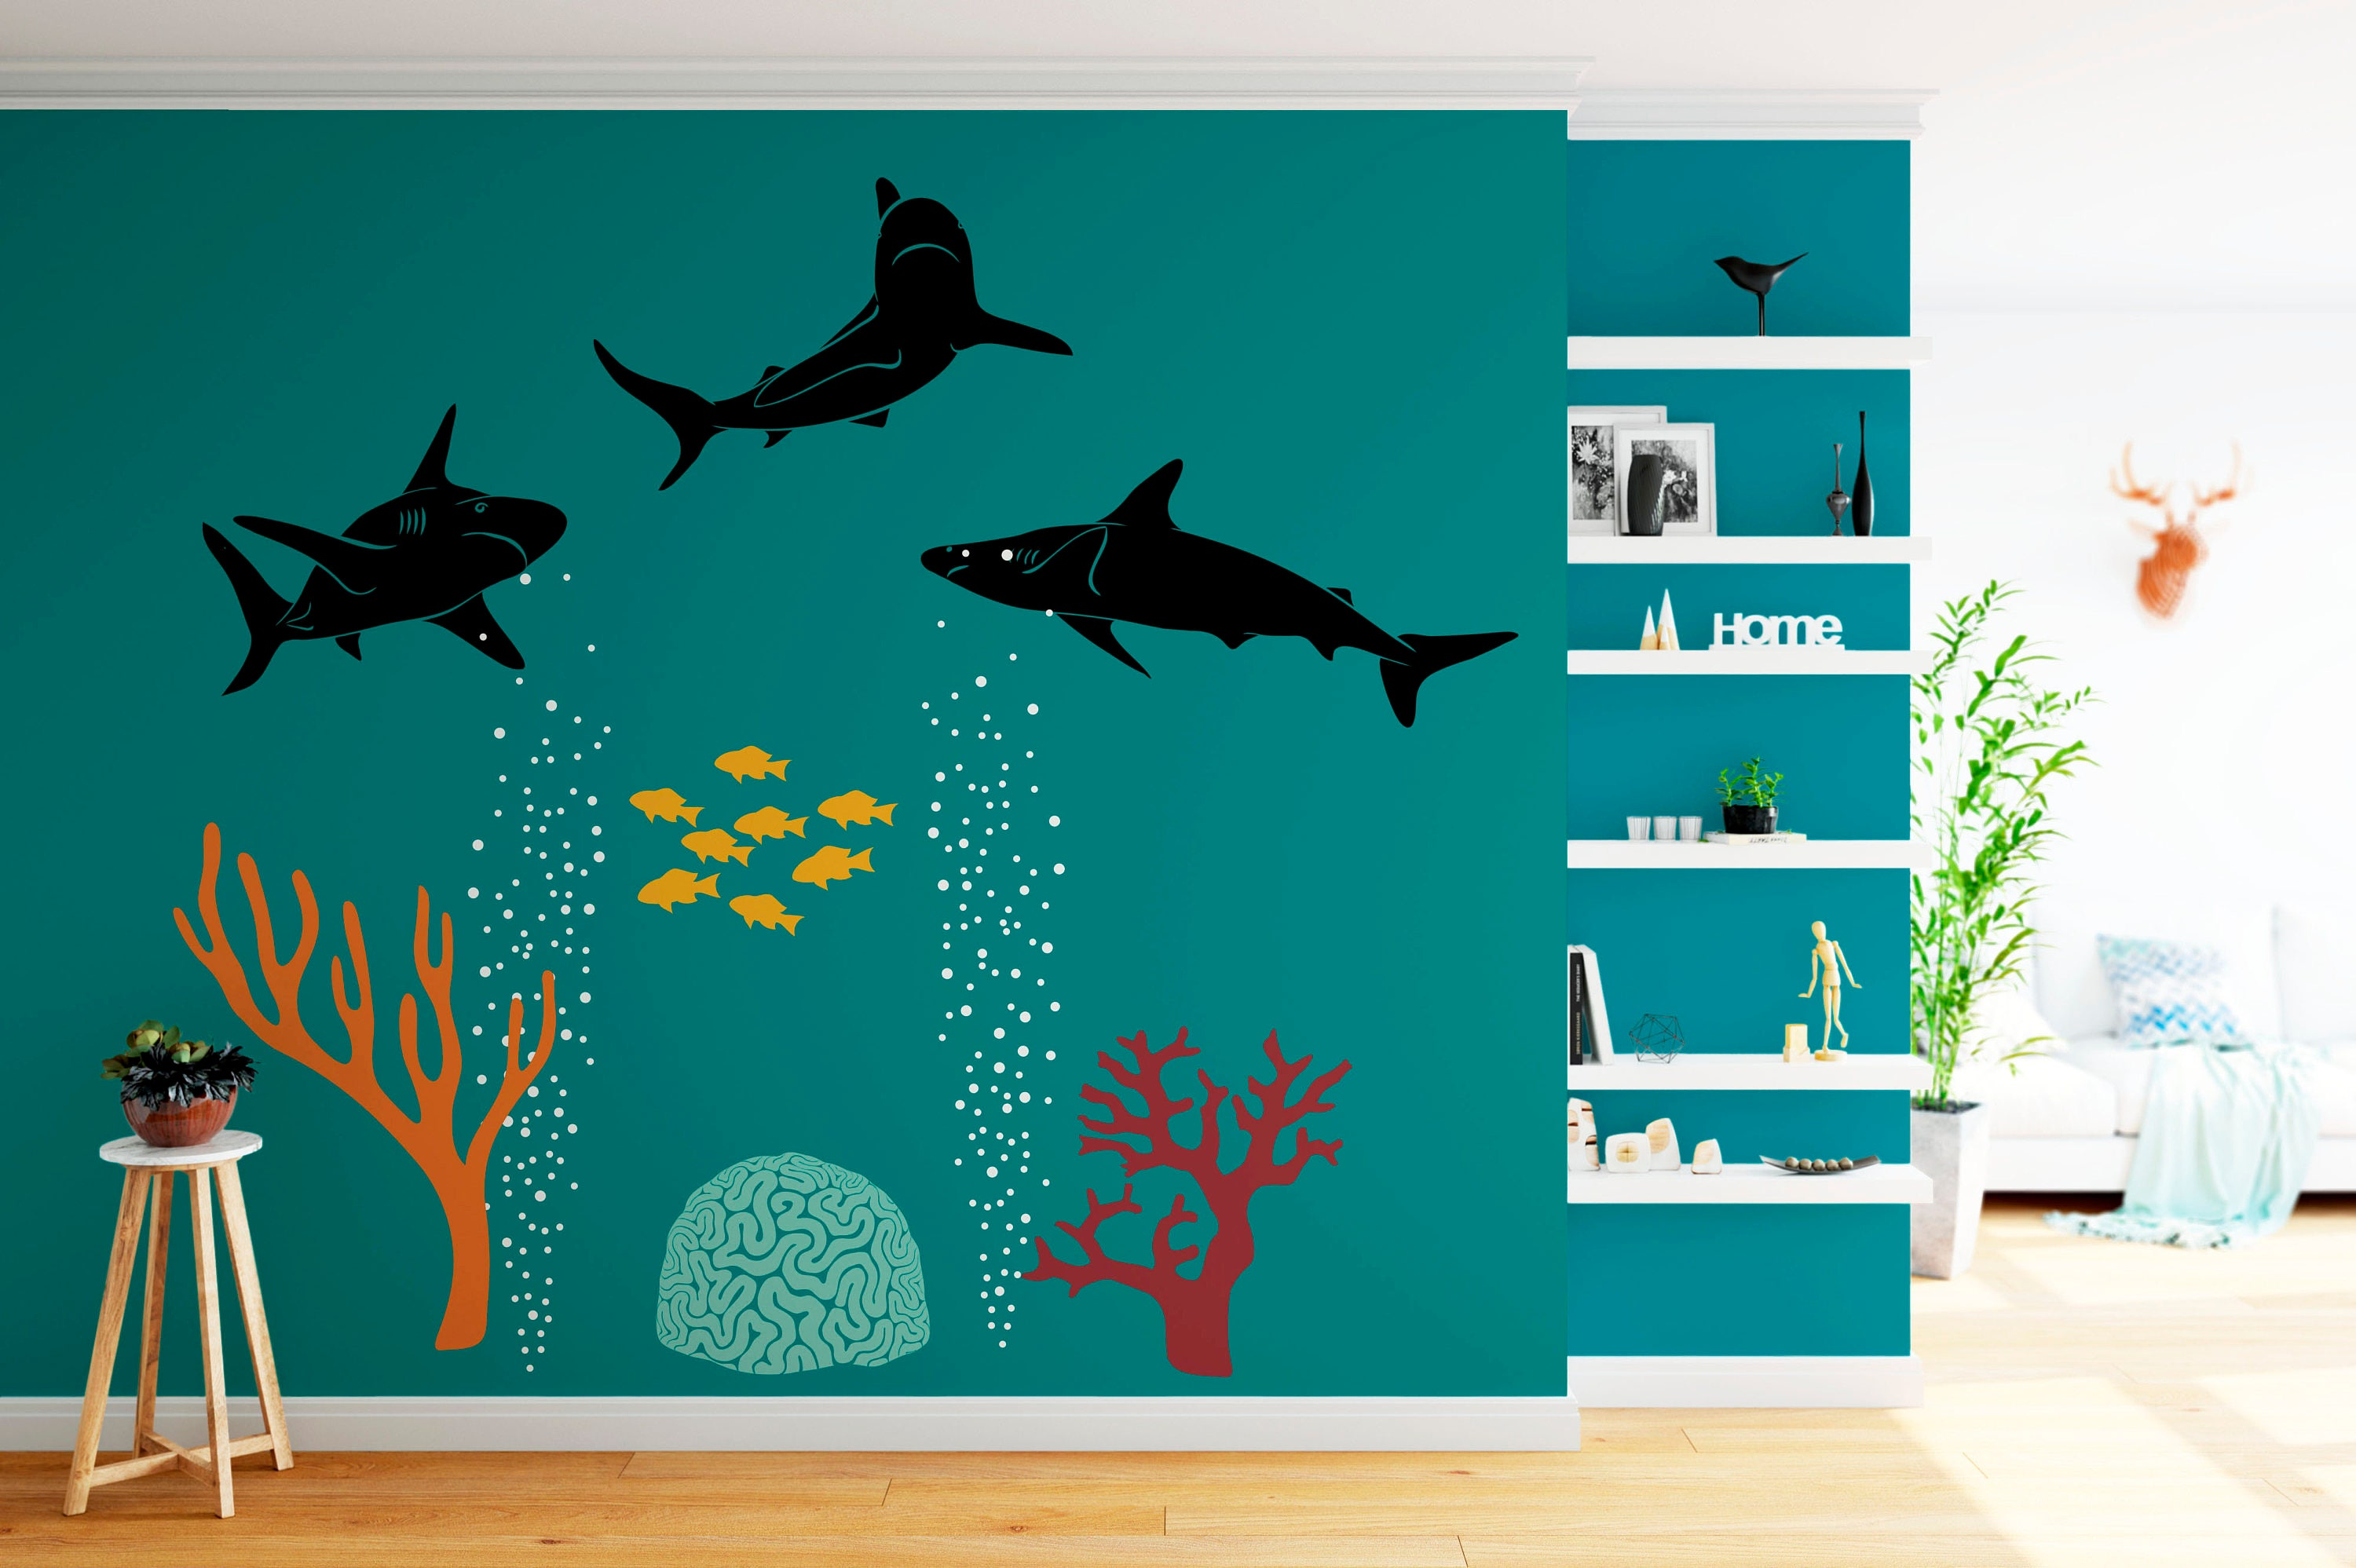 Underwater Wall Decals Image Collections Home Wall Decoration Ideas - Underwater wall decals